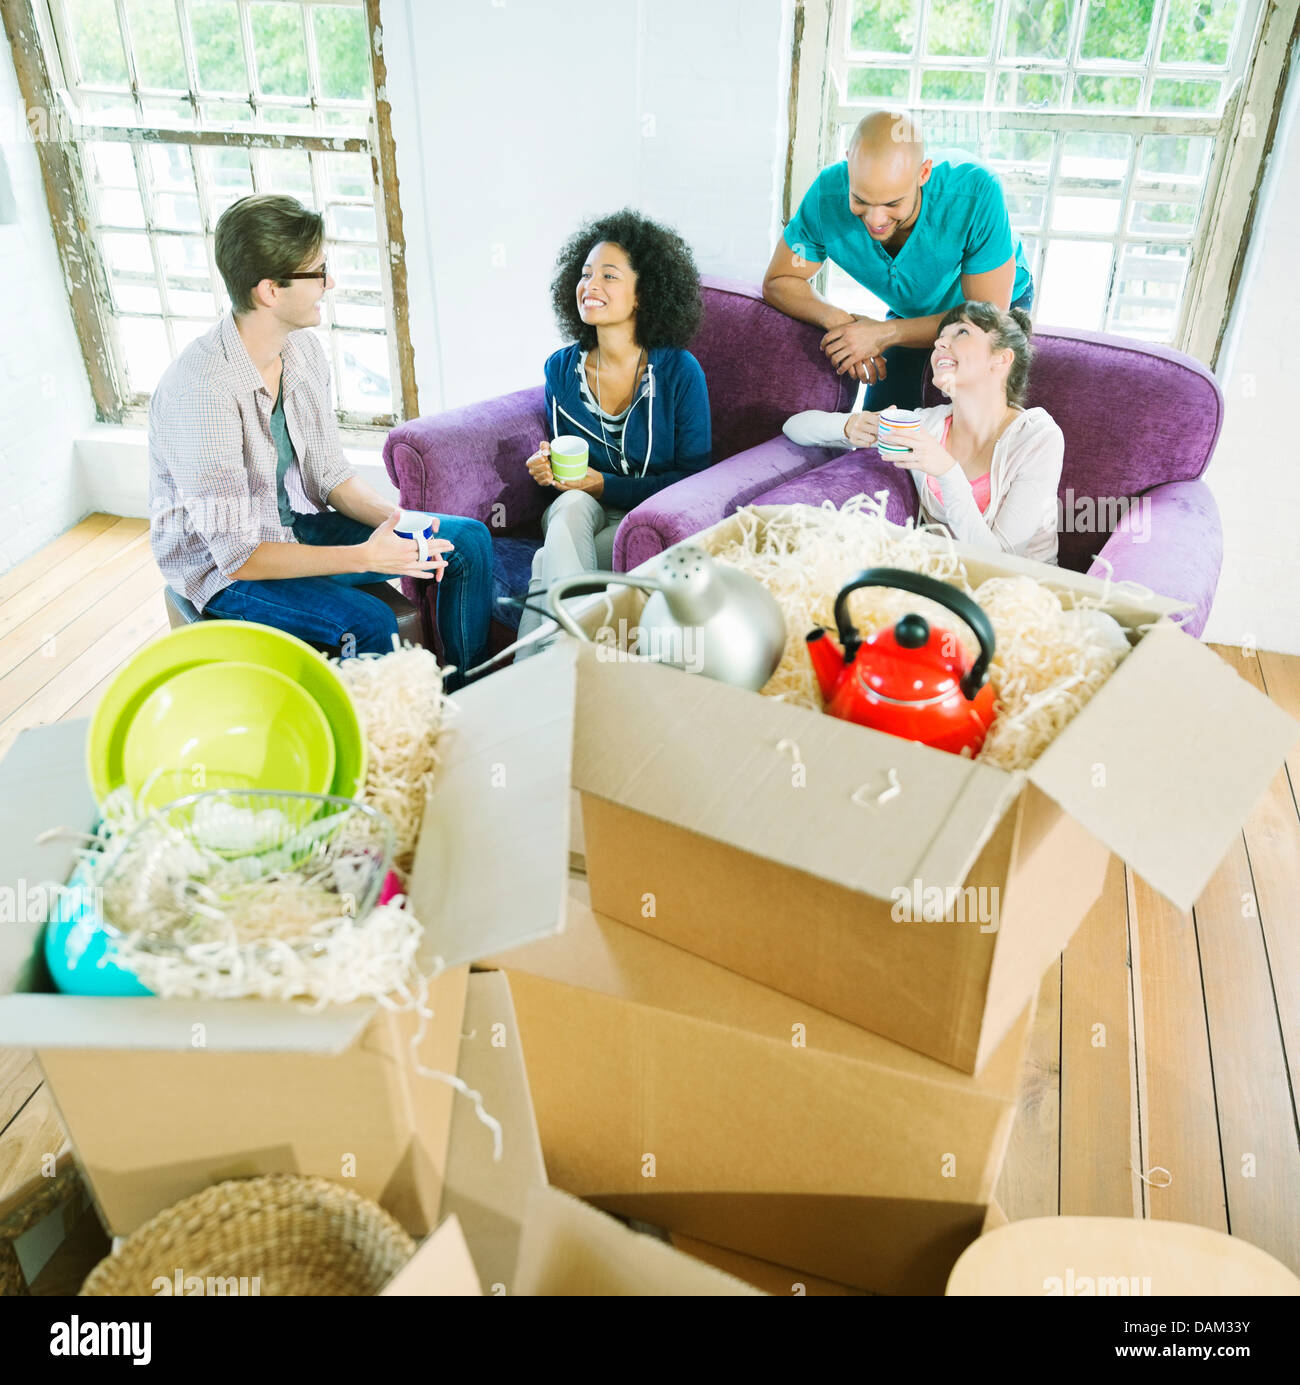 Friends relaxing in new home - Stock Image